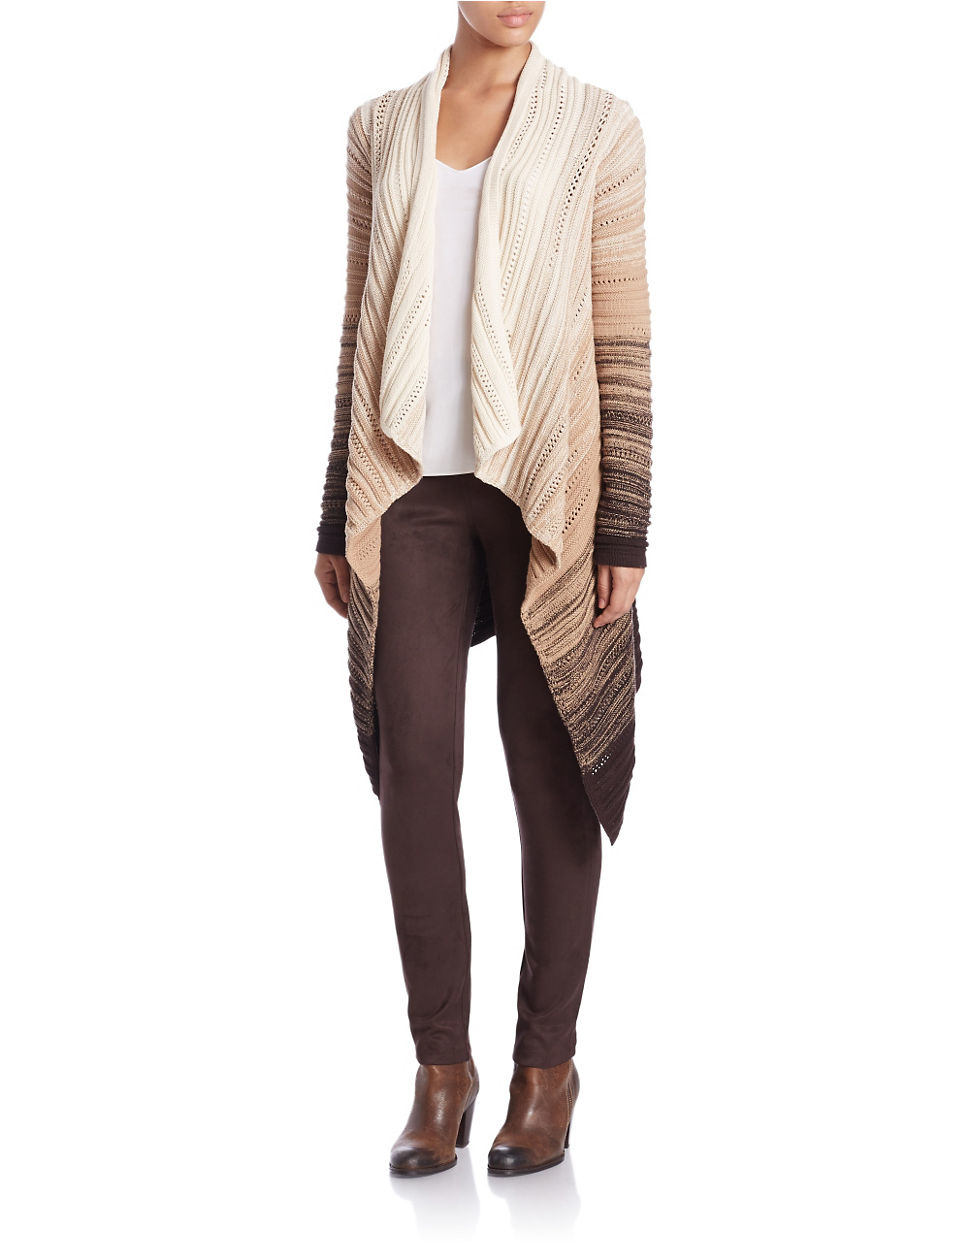 Lord & taylor Open-front Flyaway Cardigan in Brown | Lyst